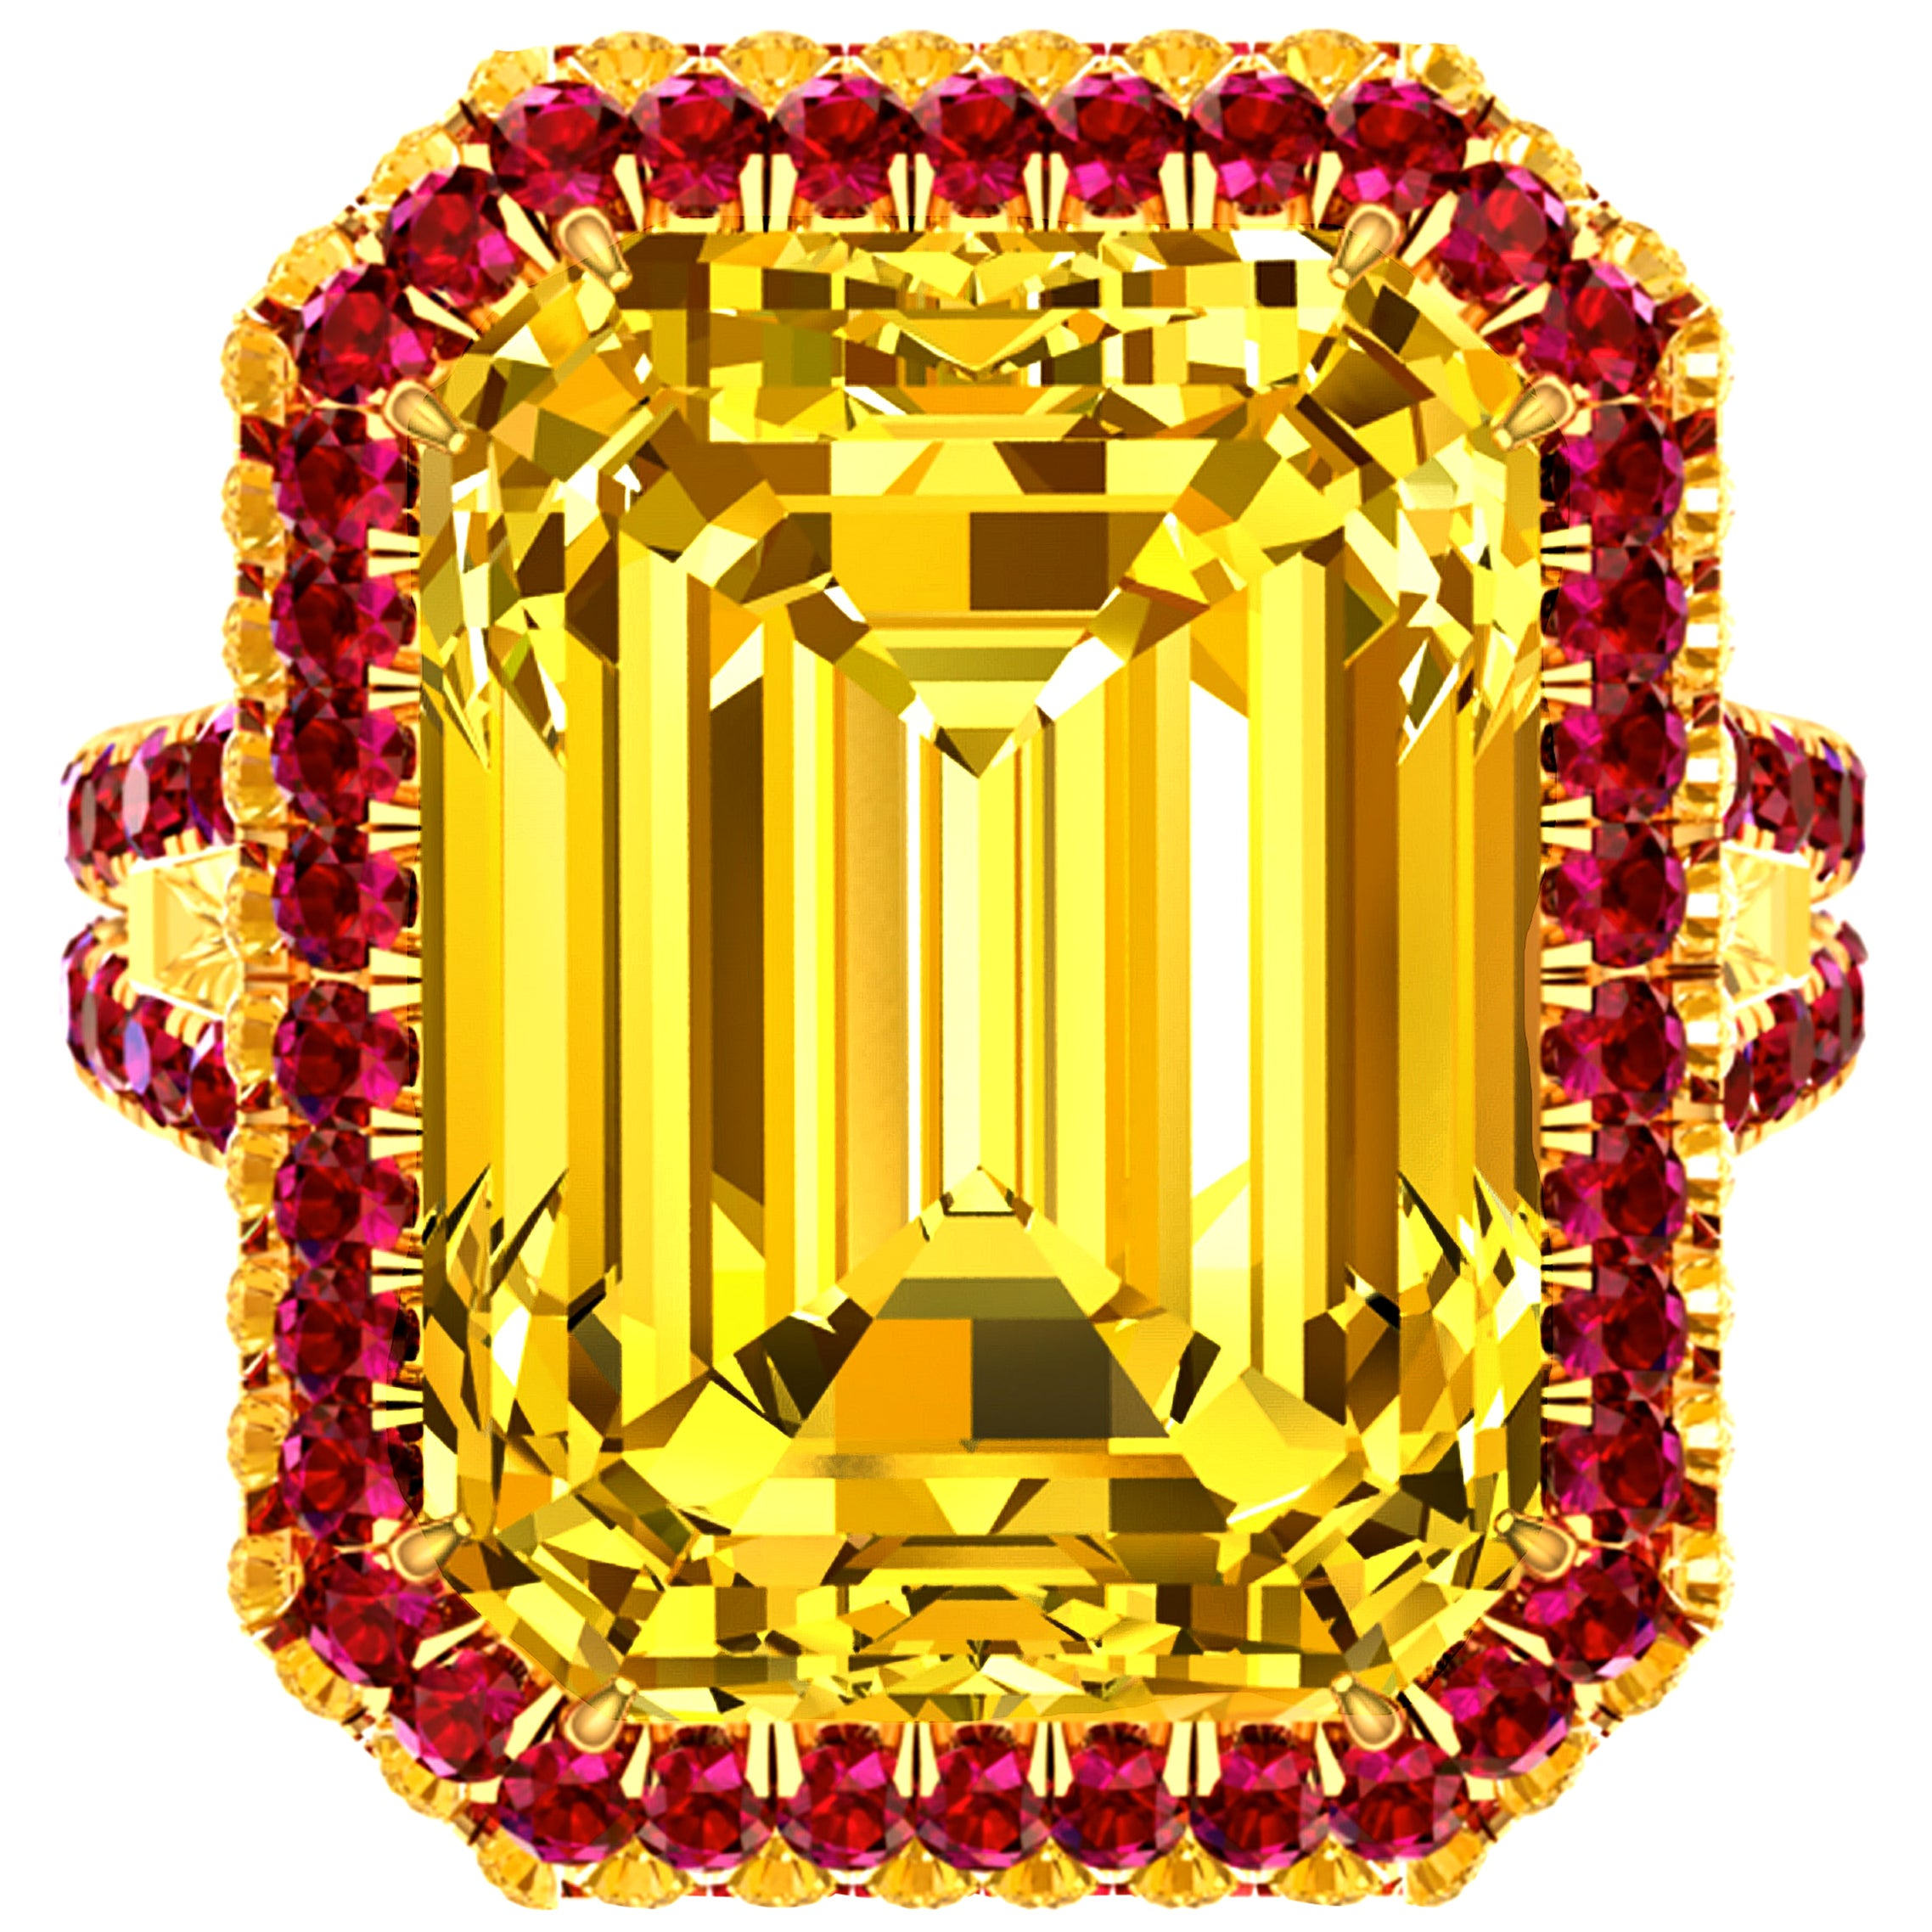 10 Carat Yellow Sapphire Emerald Cut and Ruby Ring